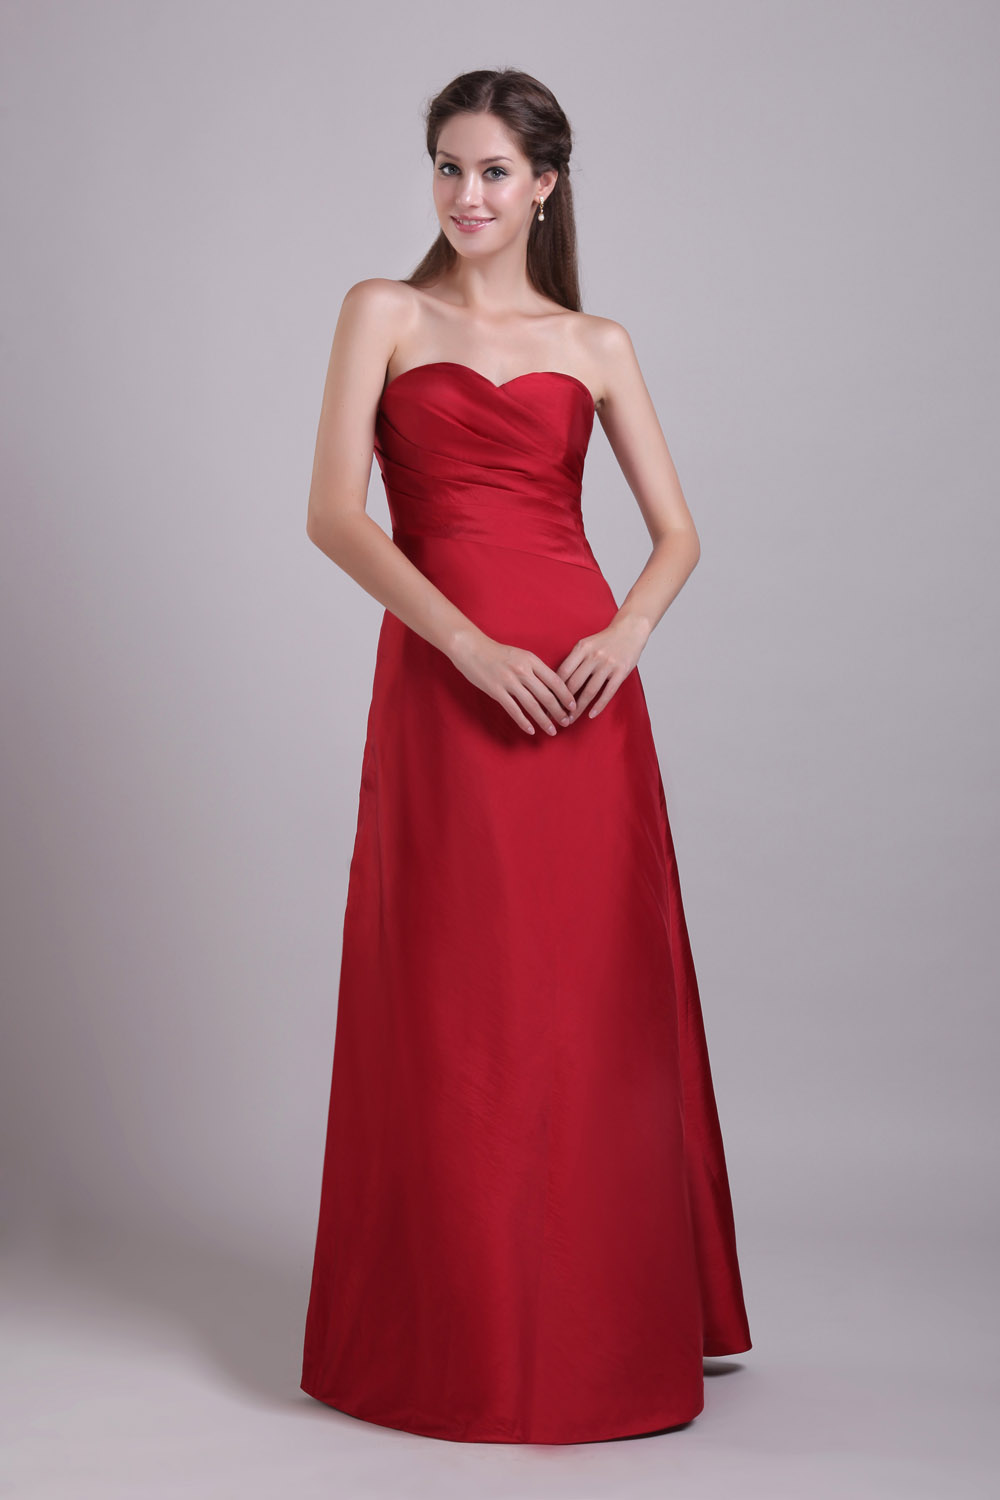 A-line Sweetheart Floor-length Satin Evening Dress